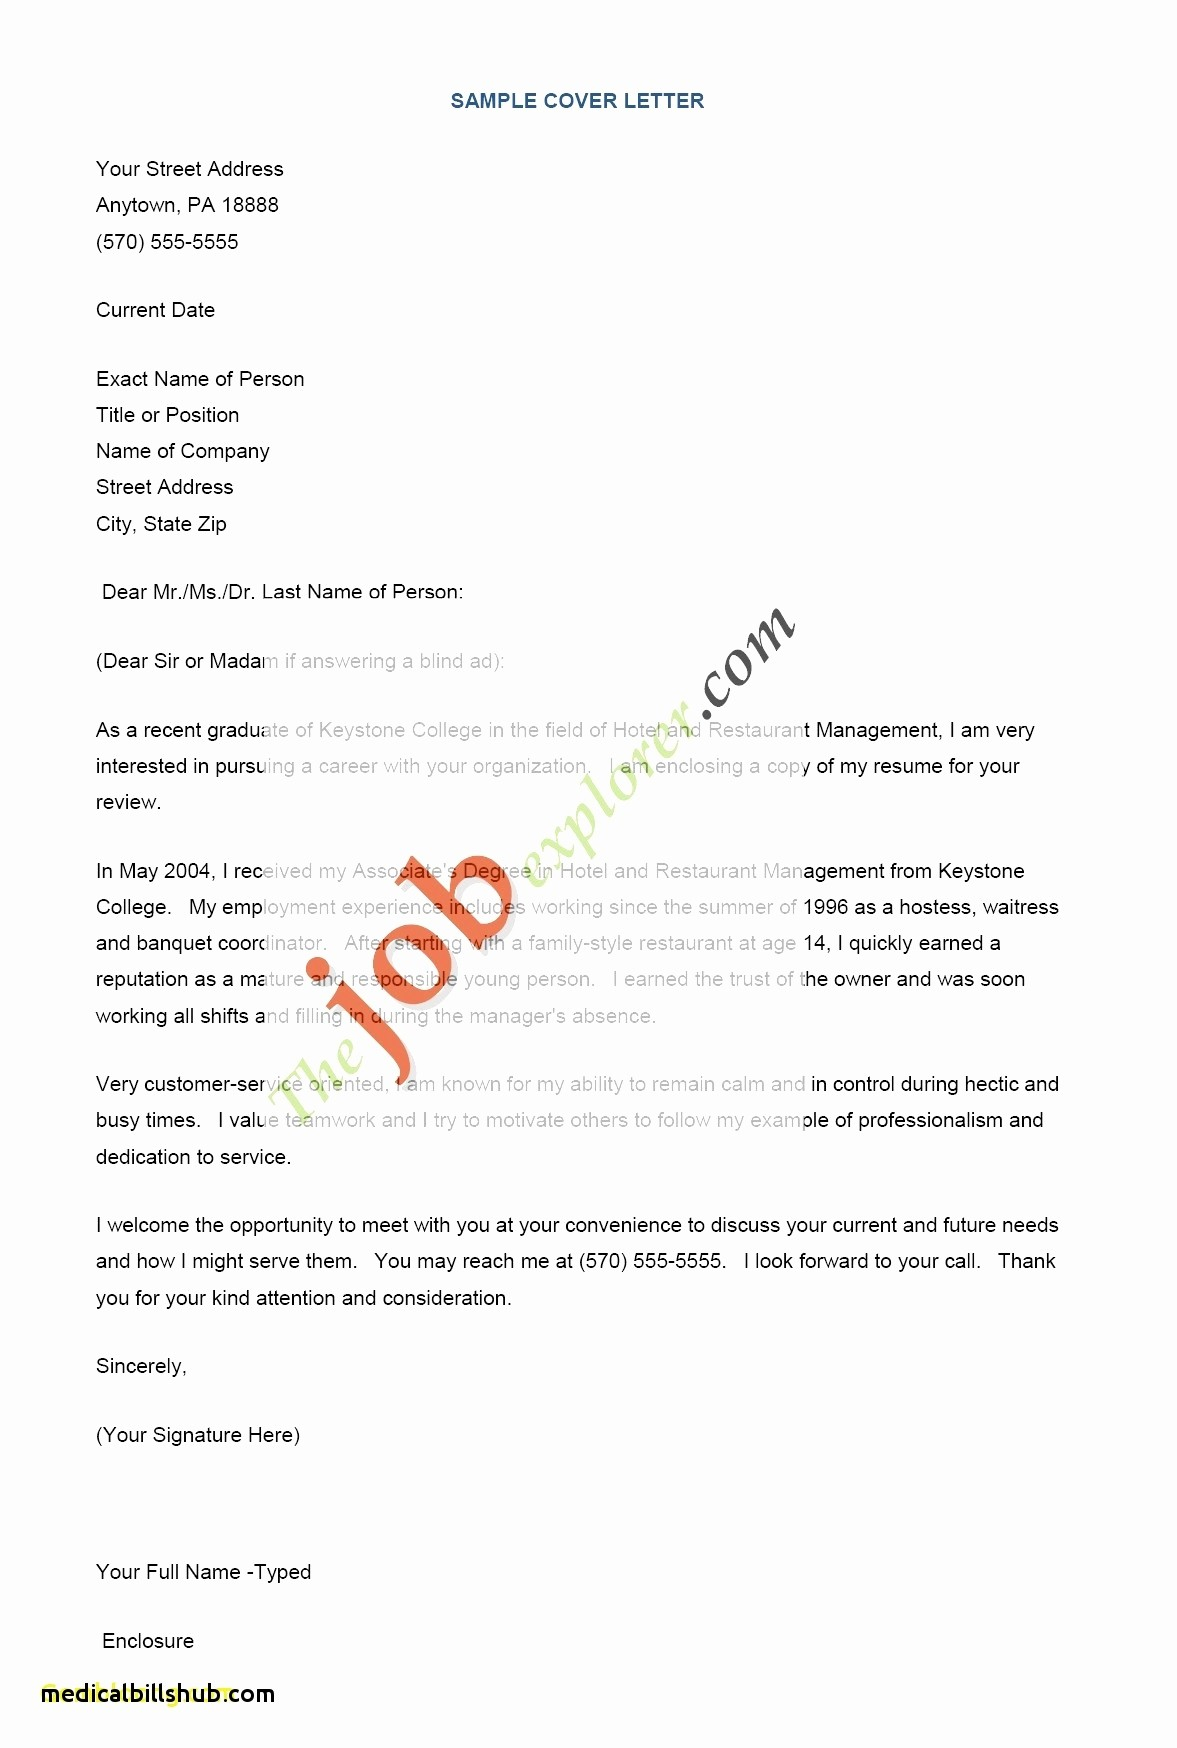 For Your Review and Consideration - School Clerk Valid School Clerk Resume associates Degree In Medical